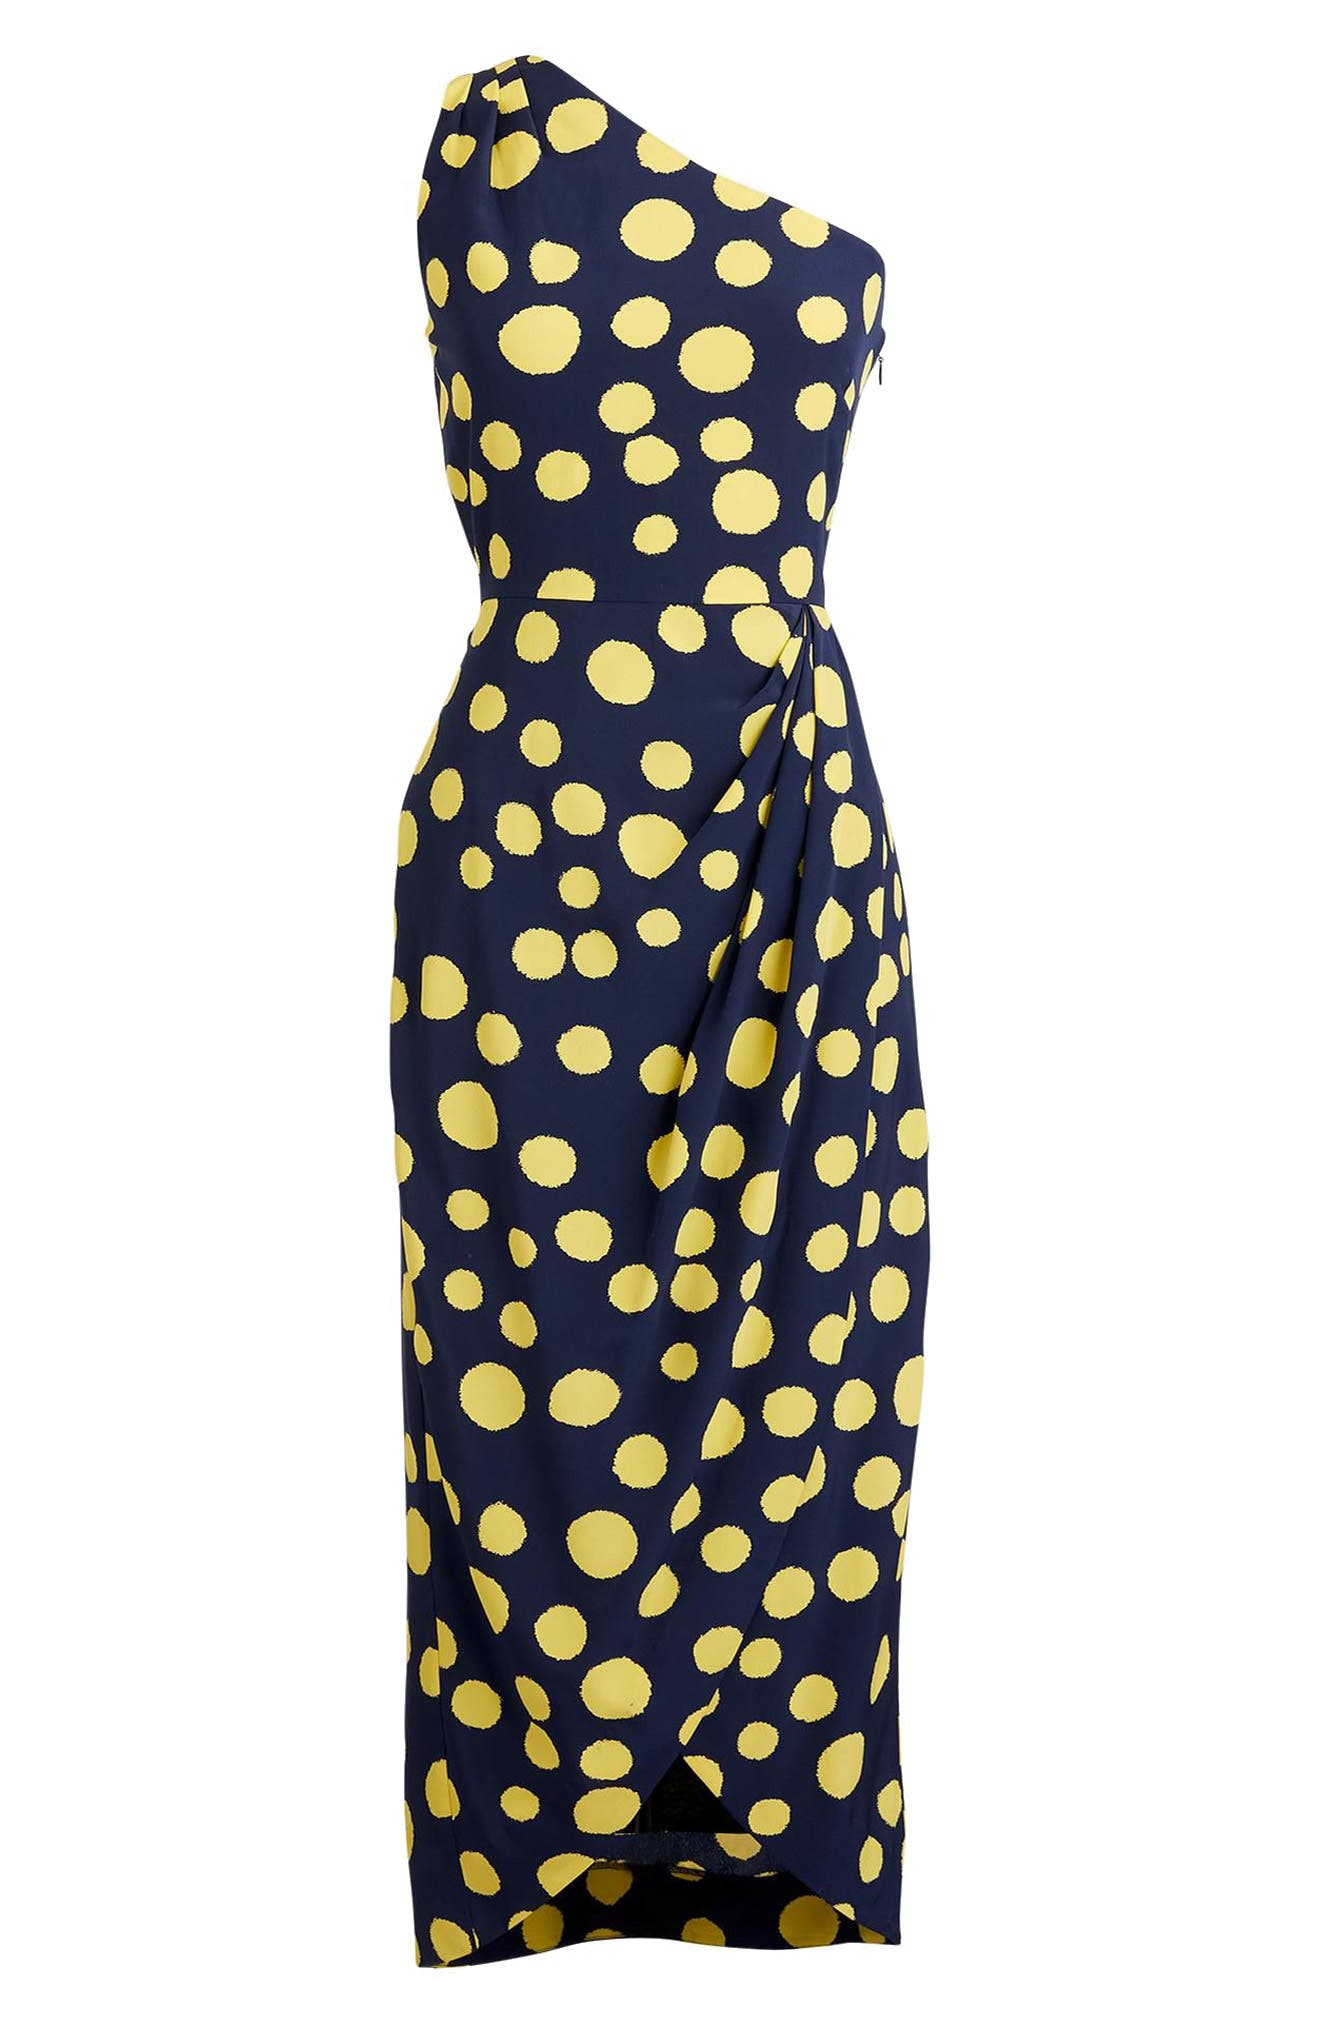 Polka Dot One-Shoulder Silk Dress,                             Alternate thumbnail 7, color,                             Navy